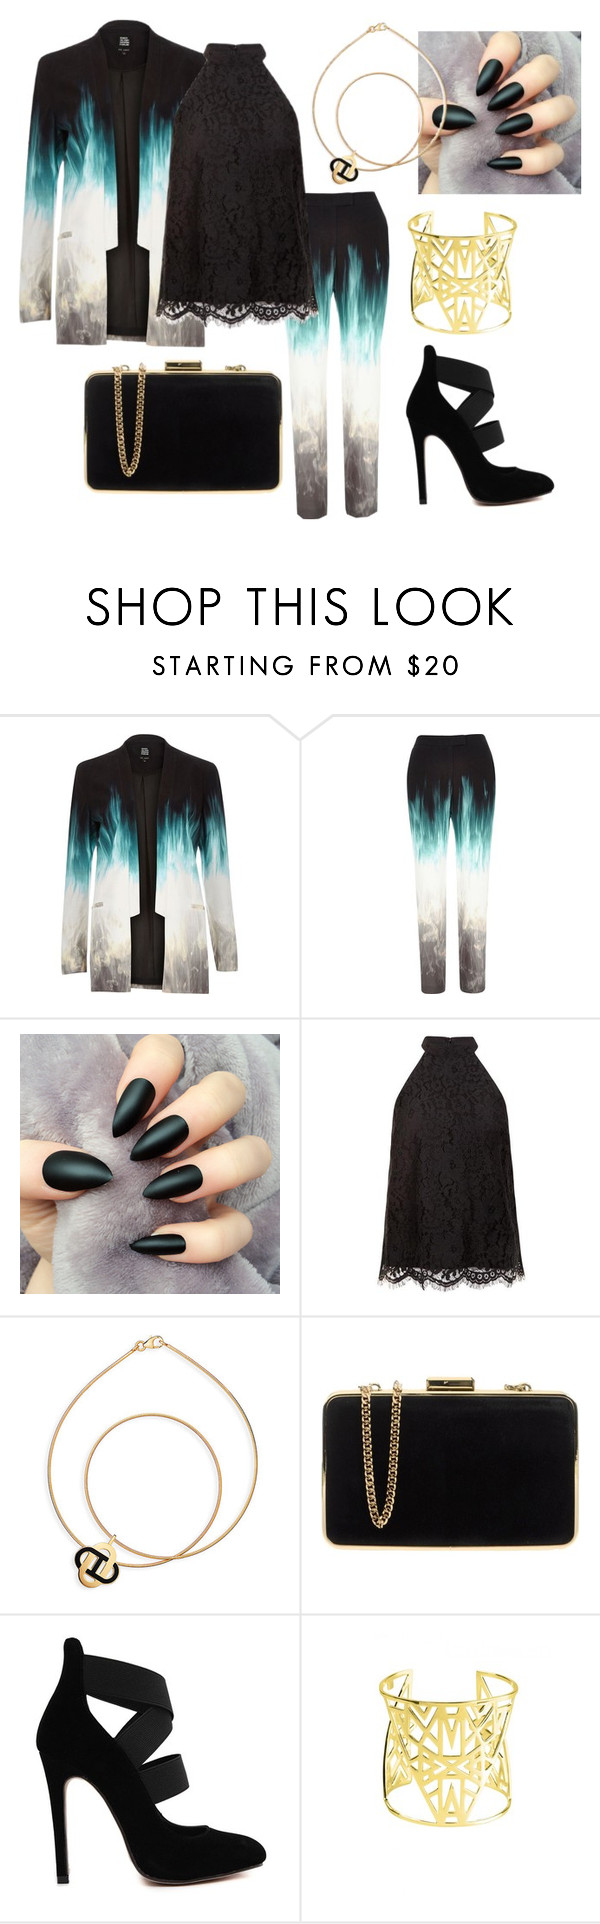 """""""Love is the ultimate expression of the will to live. - Tom Wolfe"""" by emma-oloughlin ❤ liked on Polyvore featuring River Island, Keepsake the Label, MICHAEL Michael Kors and Vélizance"""